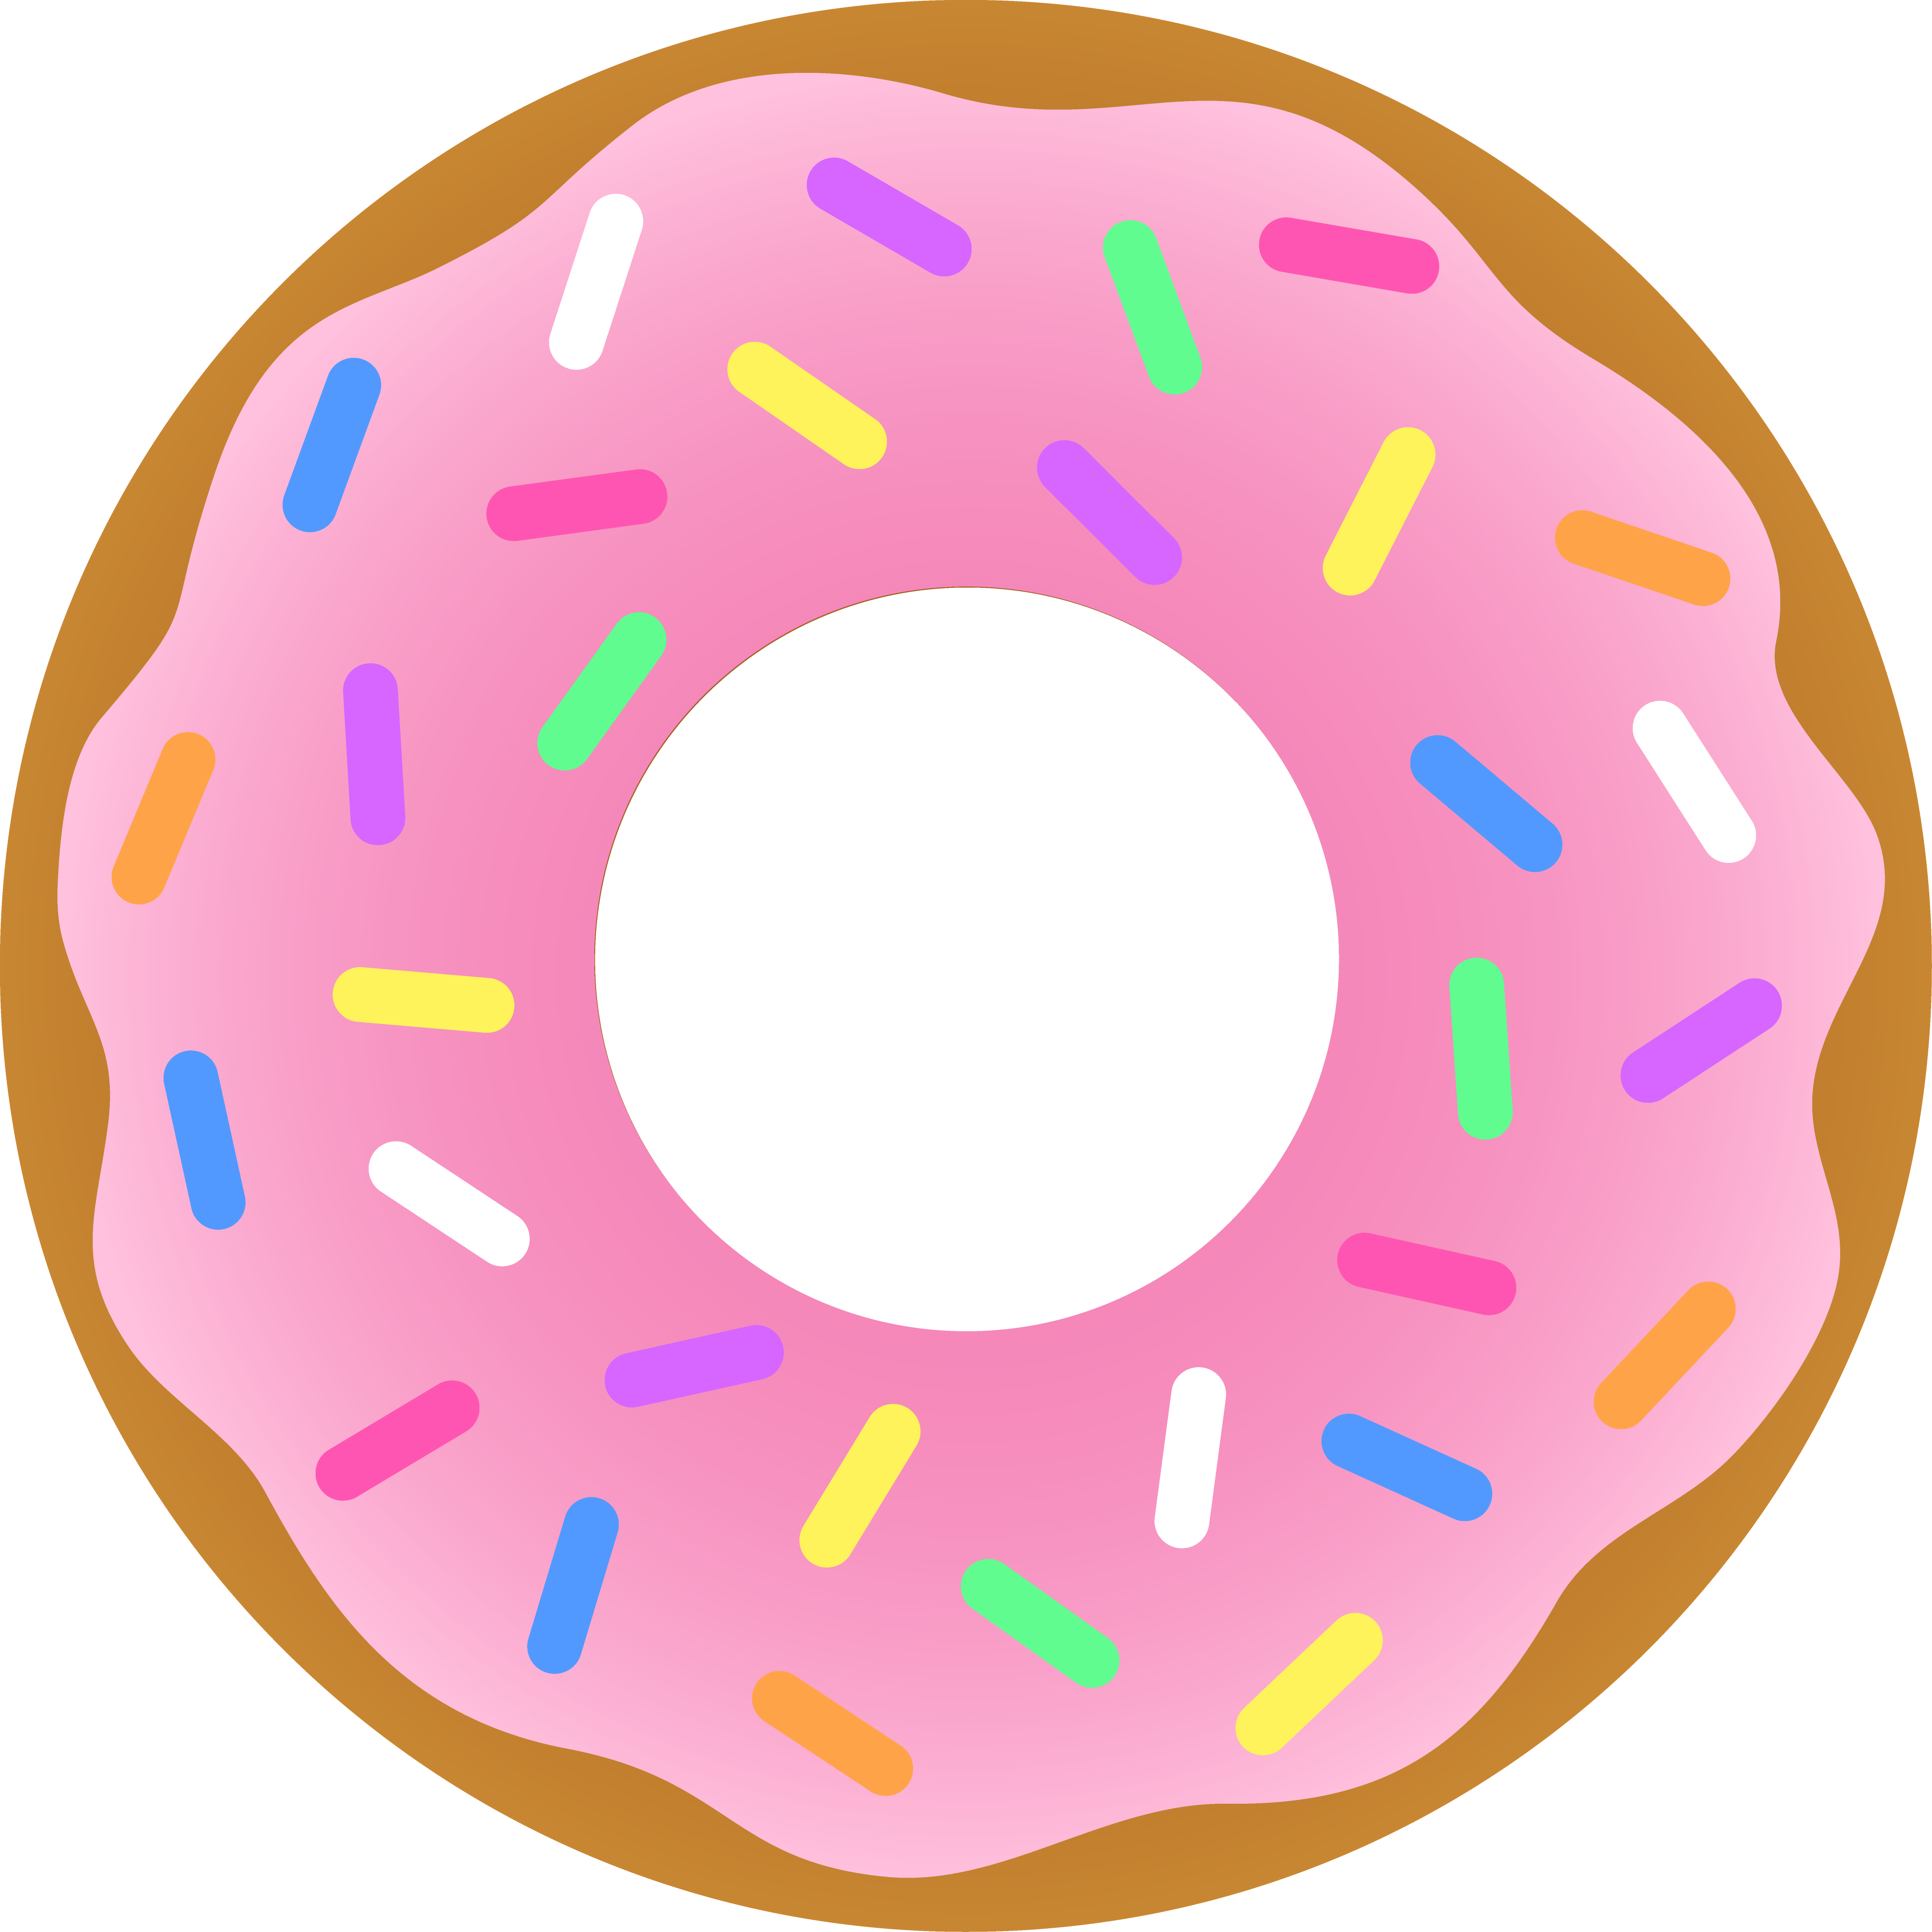 Heart clipart donut. Pink free image